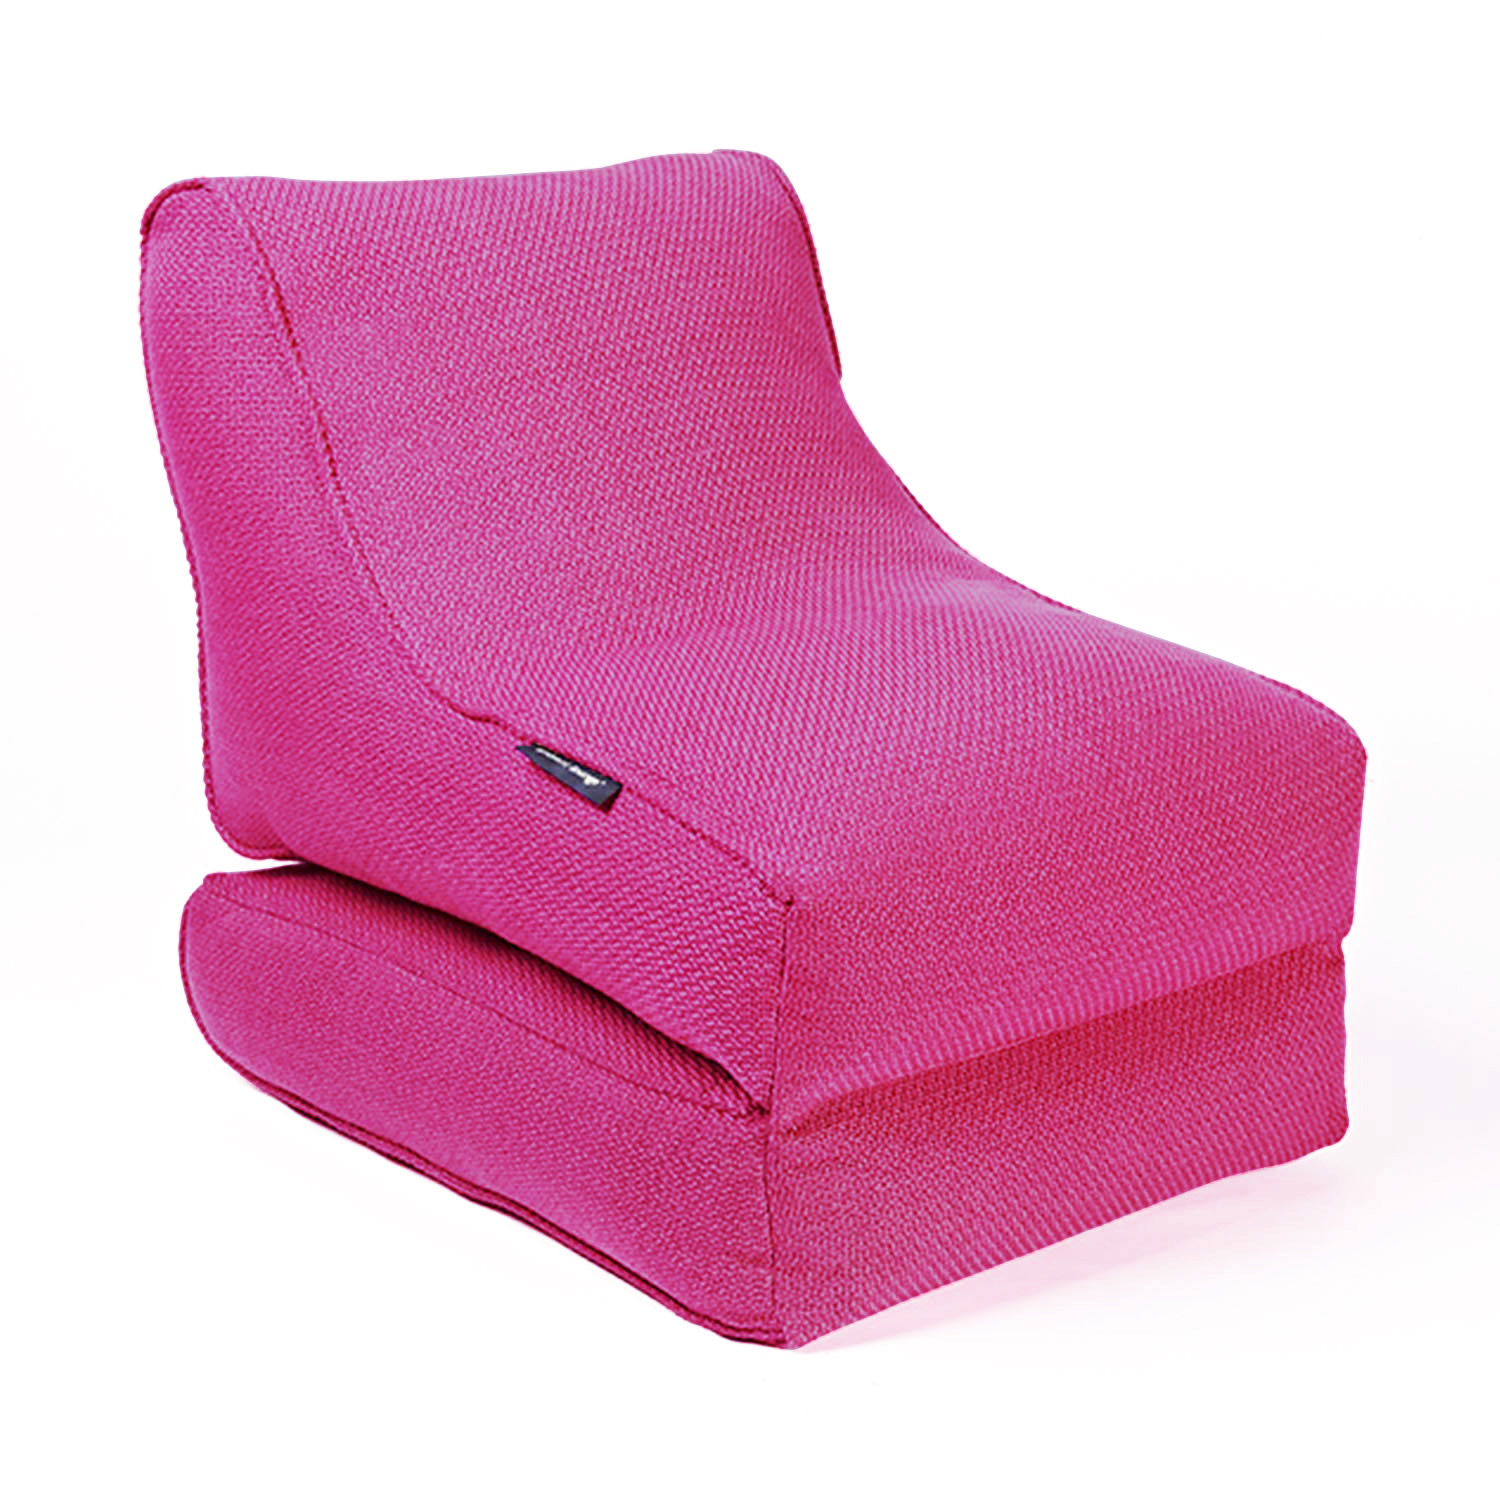 Indoor Bean Bags Conversion Lounger Sakura Pink